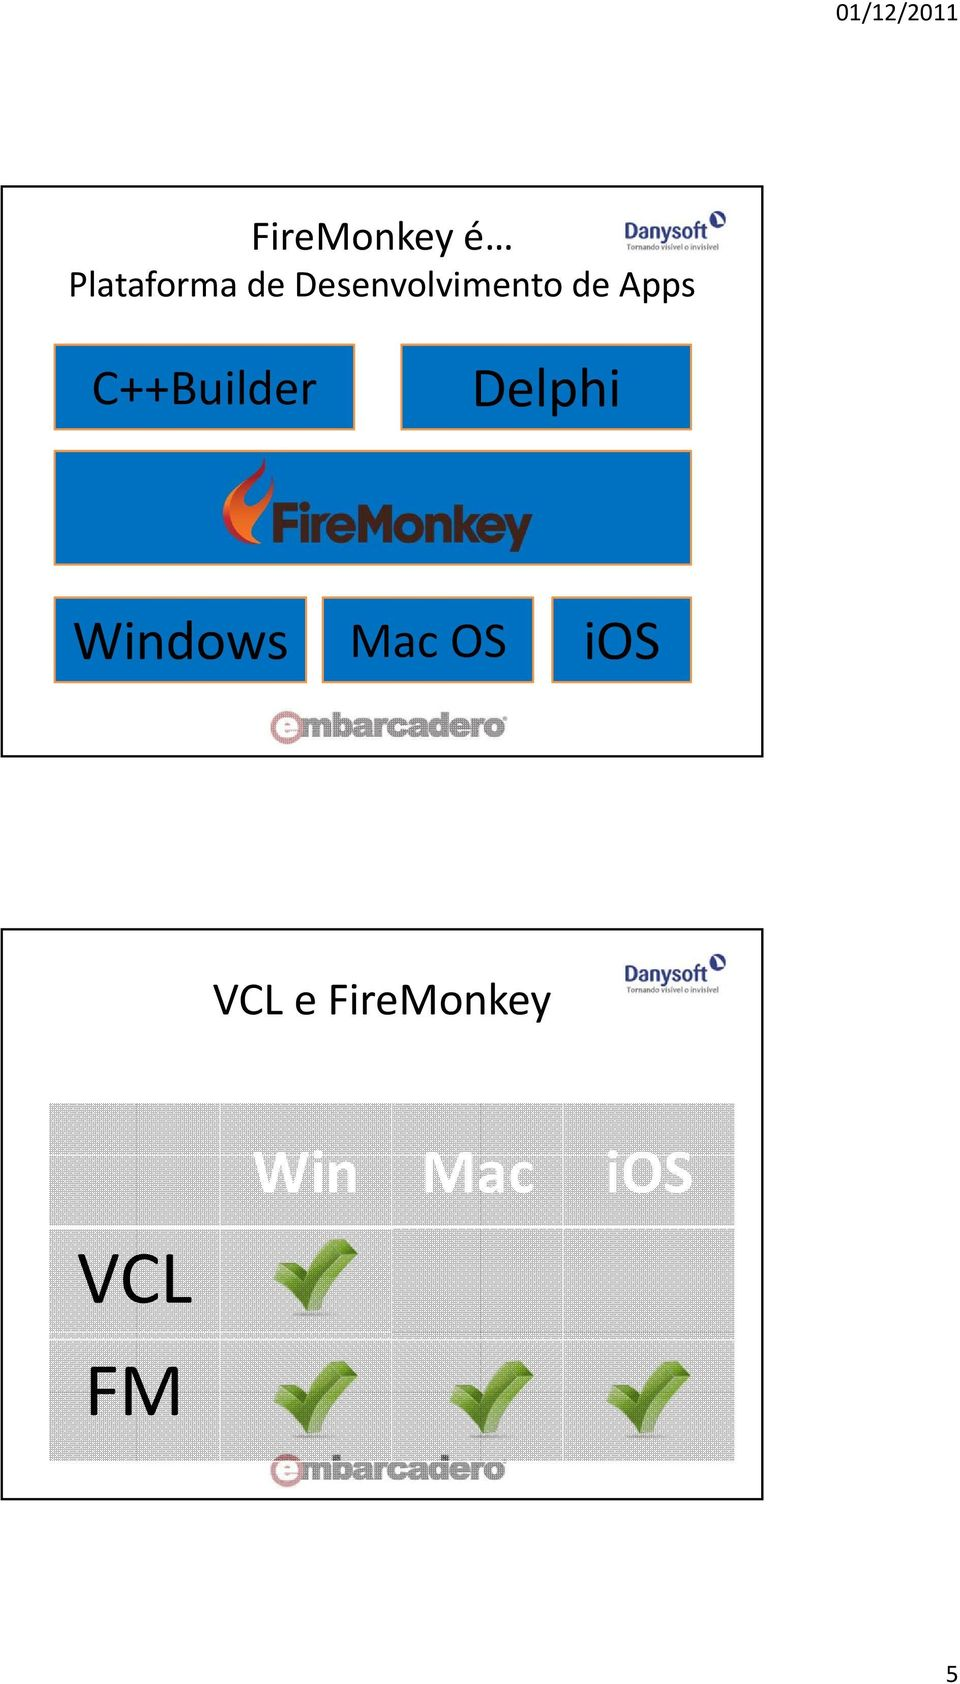 C++Builder Delphi Windows Mac